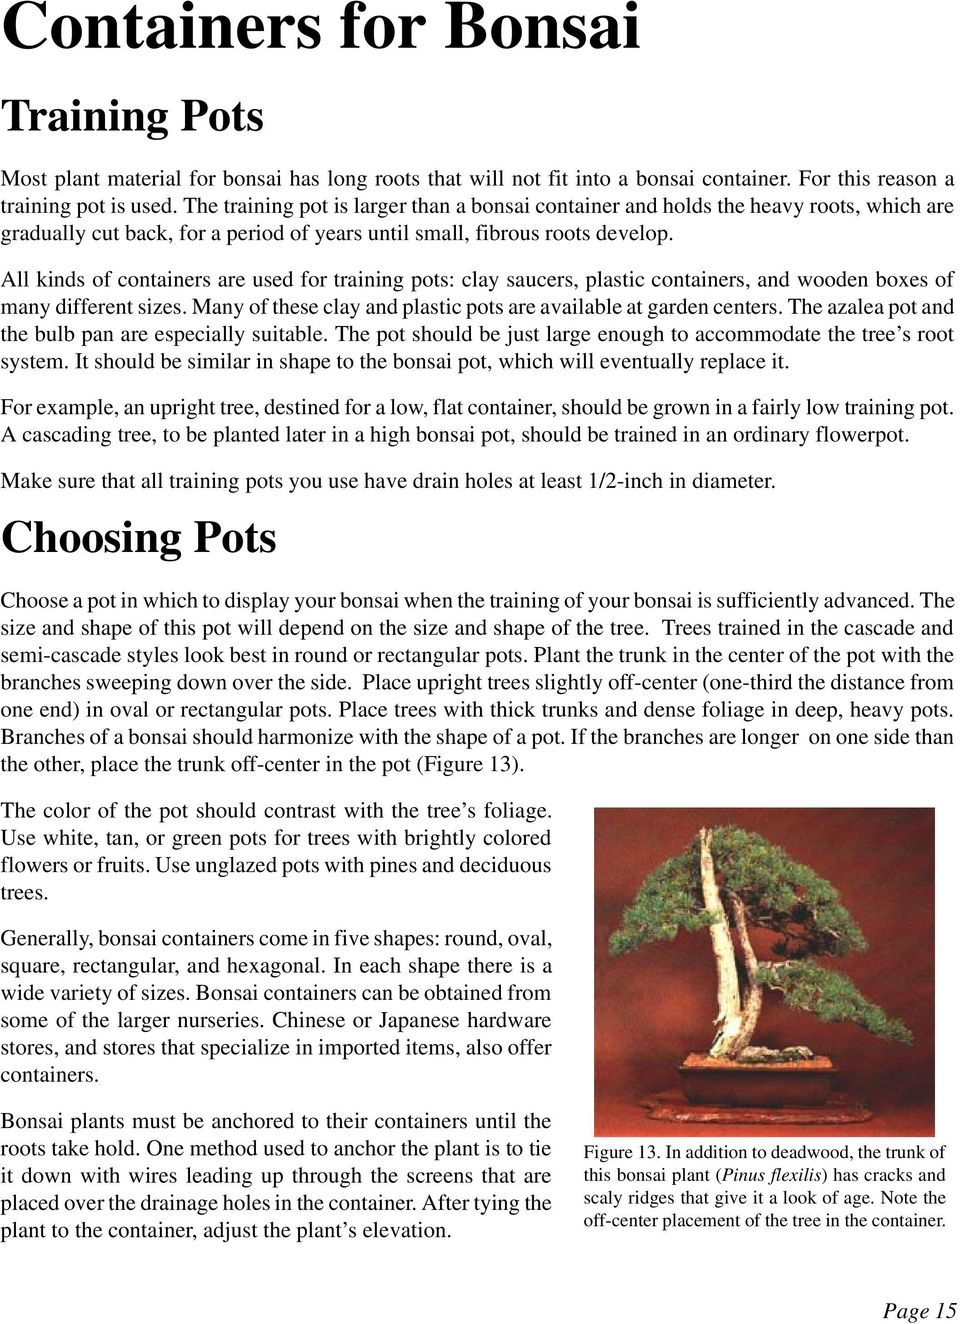 Growing Bonsai Publication Information Page 1 Pdf Wiring Wisteria All Kinds Of Containers Are Used For Training Pots Clay Saucers Plastic